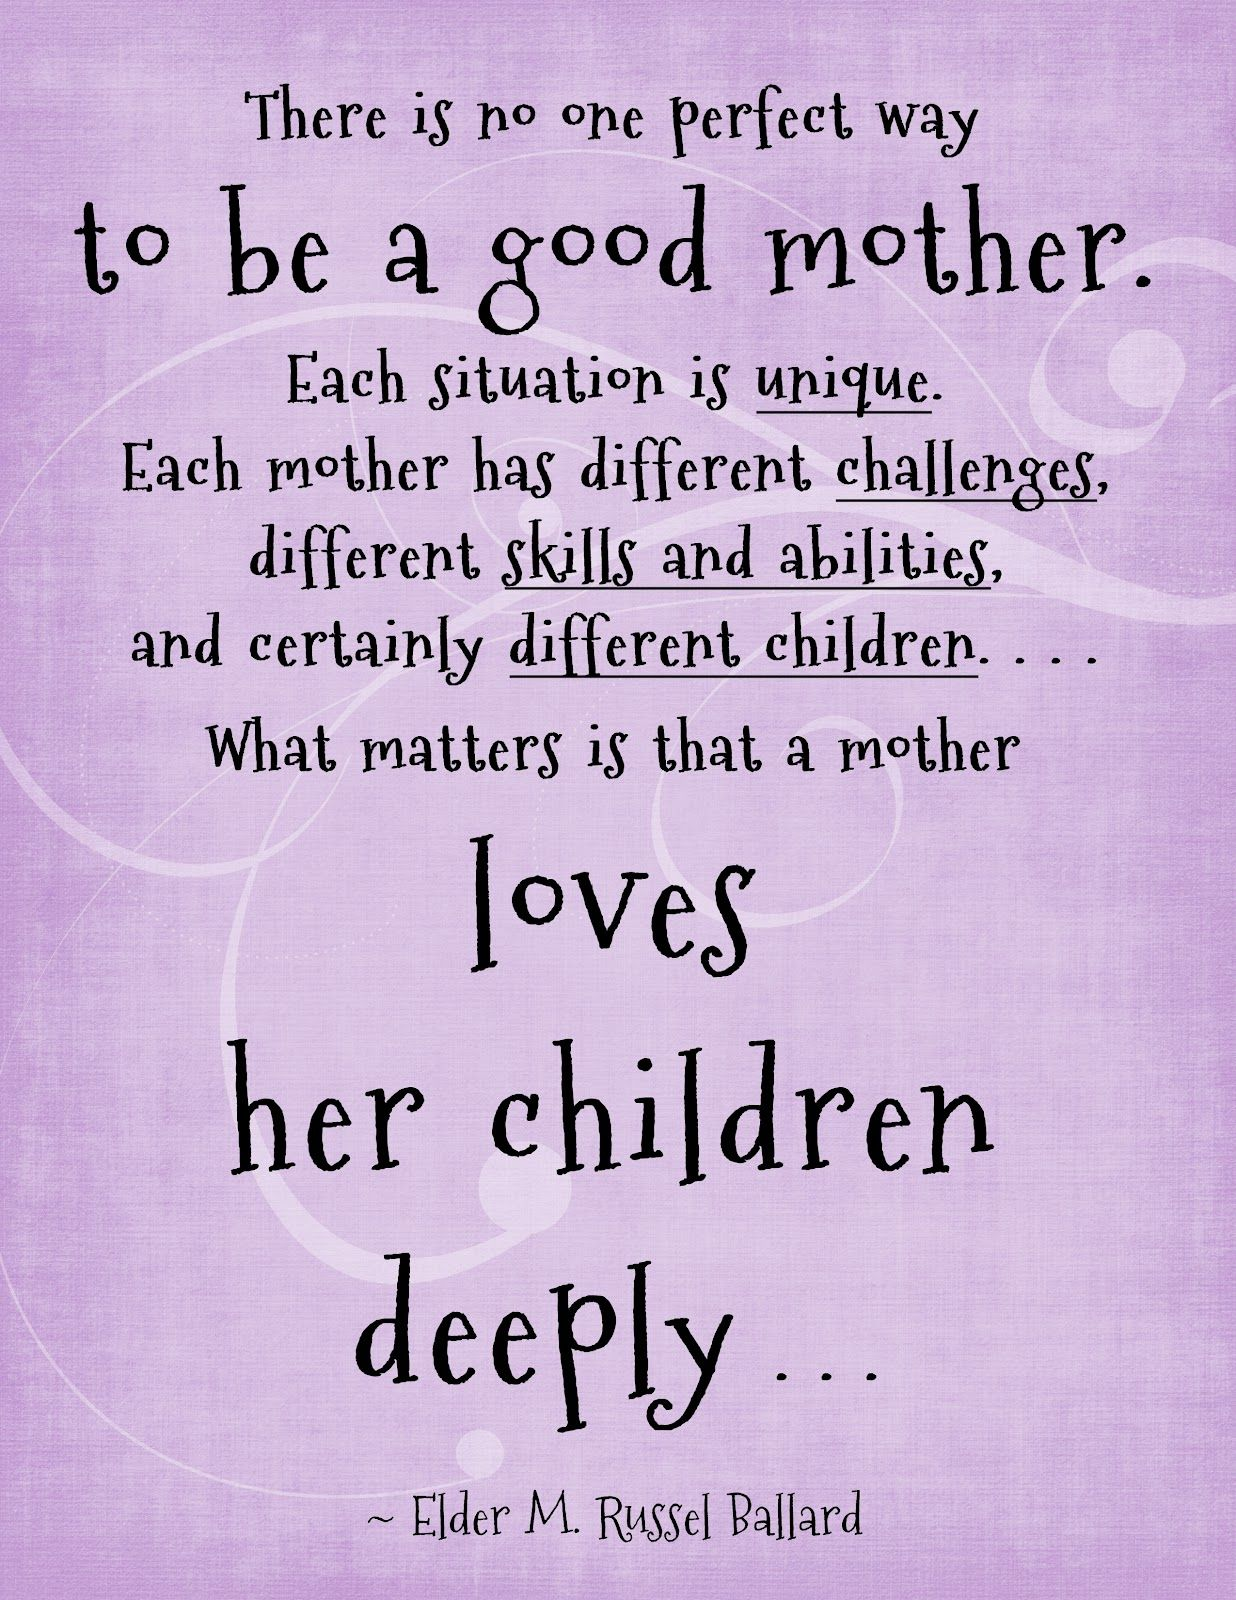 Inspirational Love for A Child Quotes and Sayings   Love ...